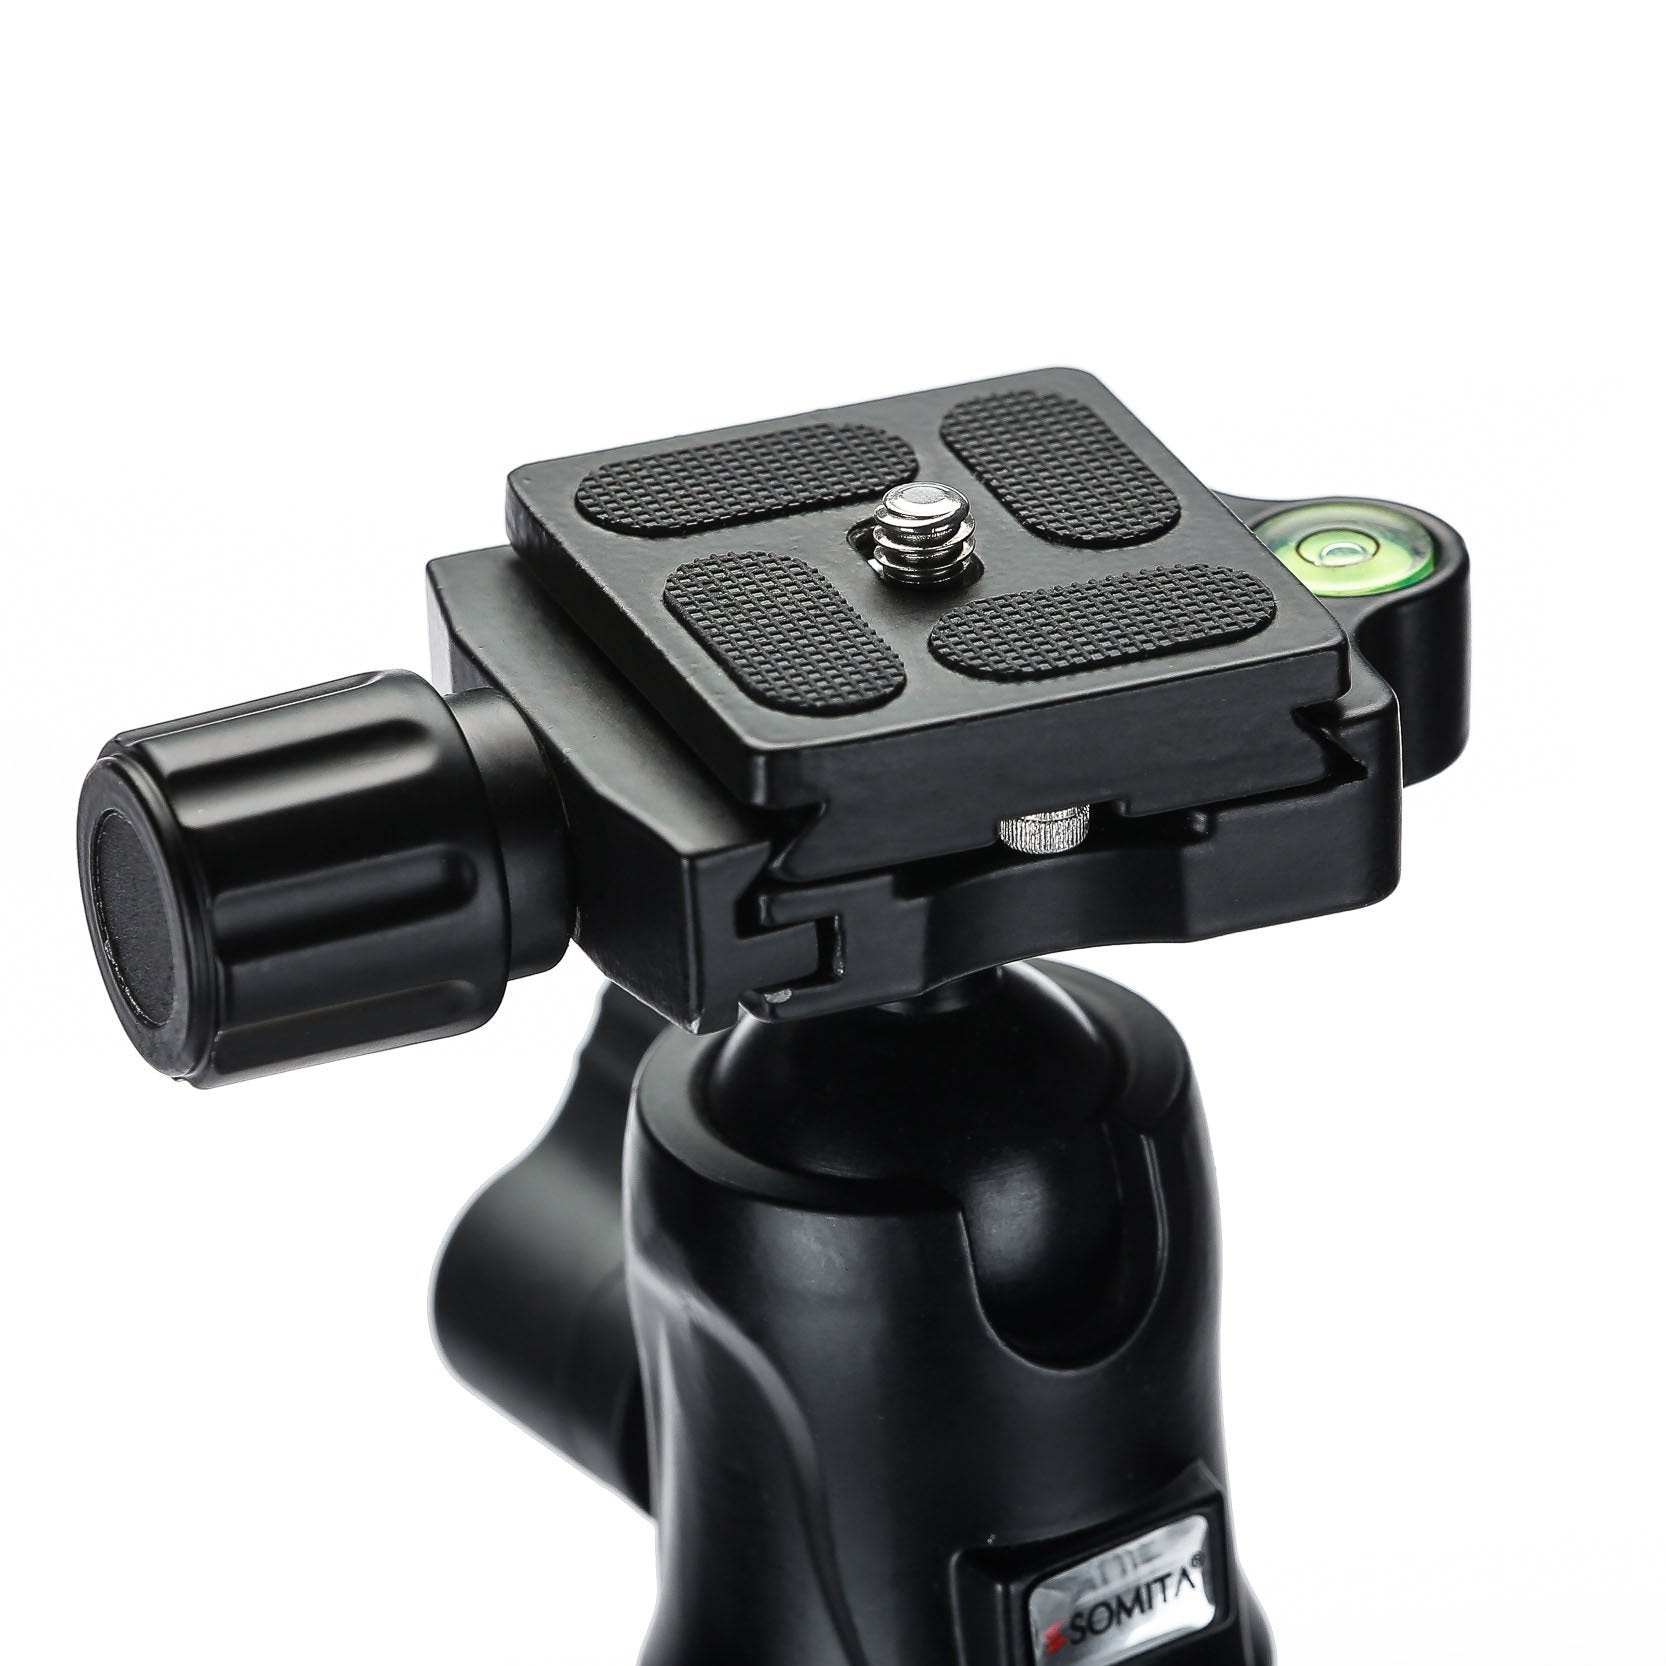 Somita St -111 Photo Video Tripod/Monopod with Ball Head